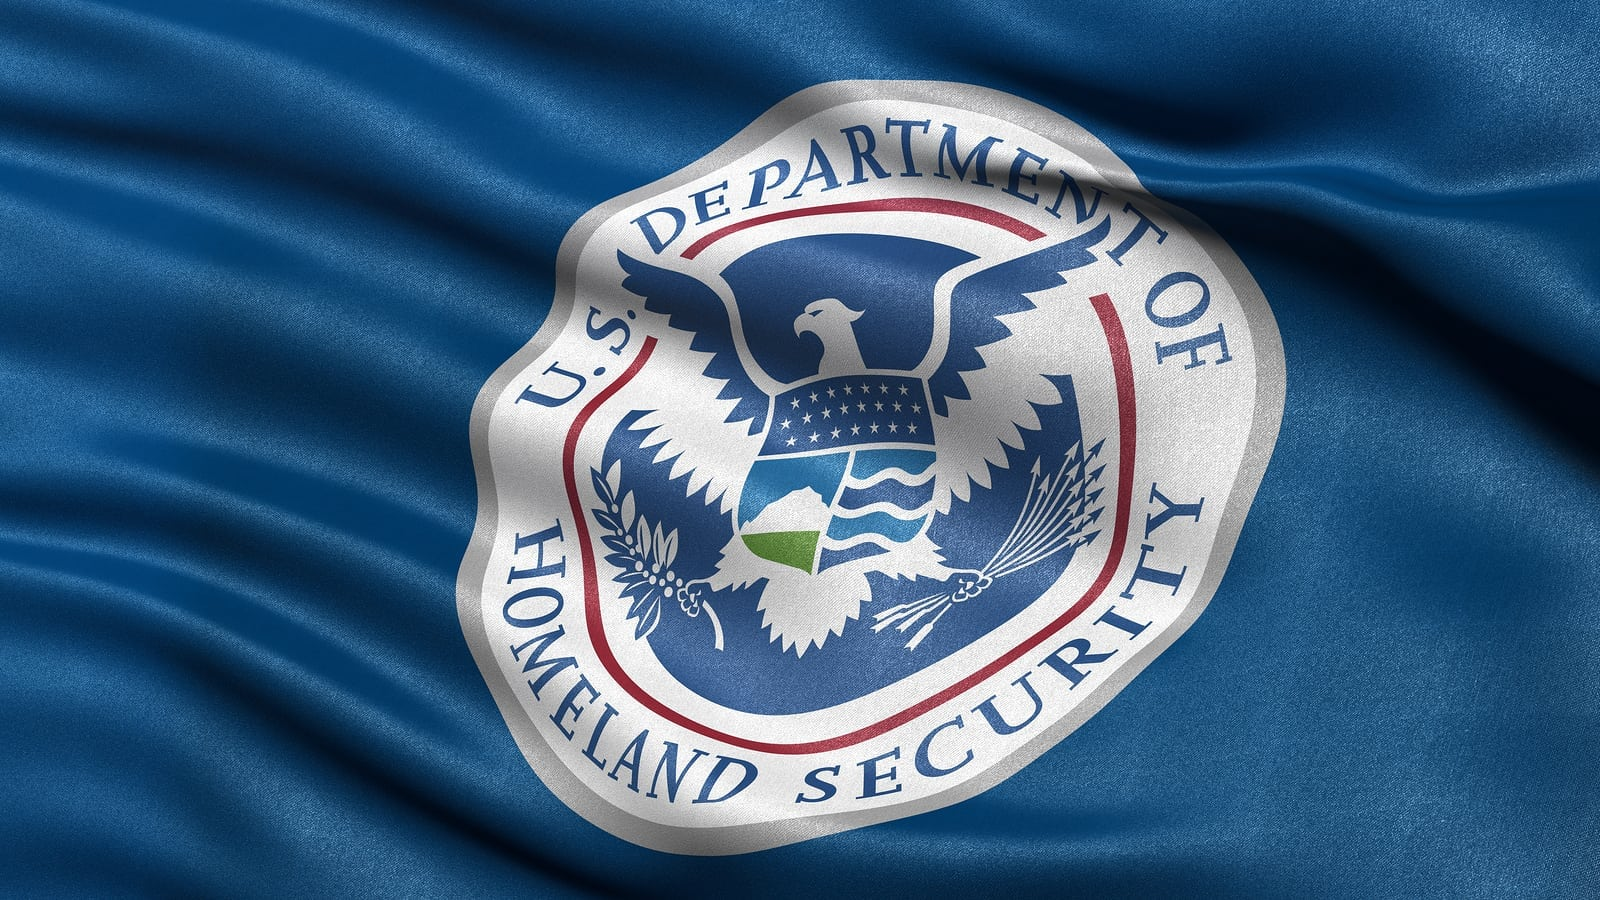 Homeland Security News: DHS Secretary Nielsen Meets with Mexican Secretary of Governance Alfonso Navarrete Prida